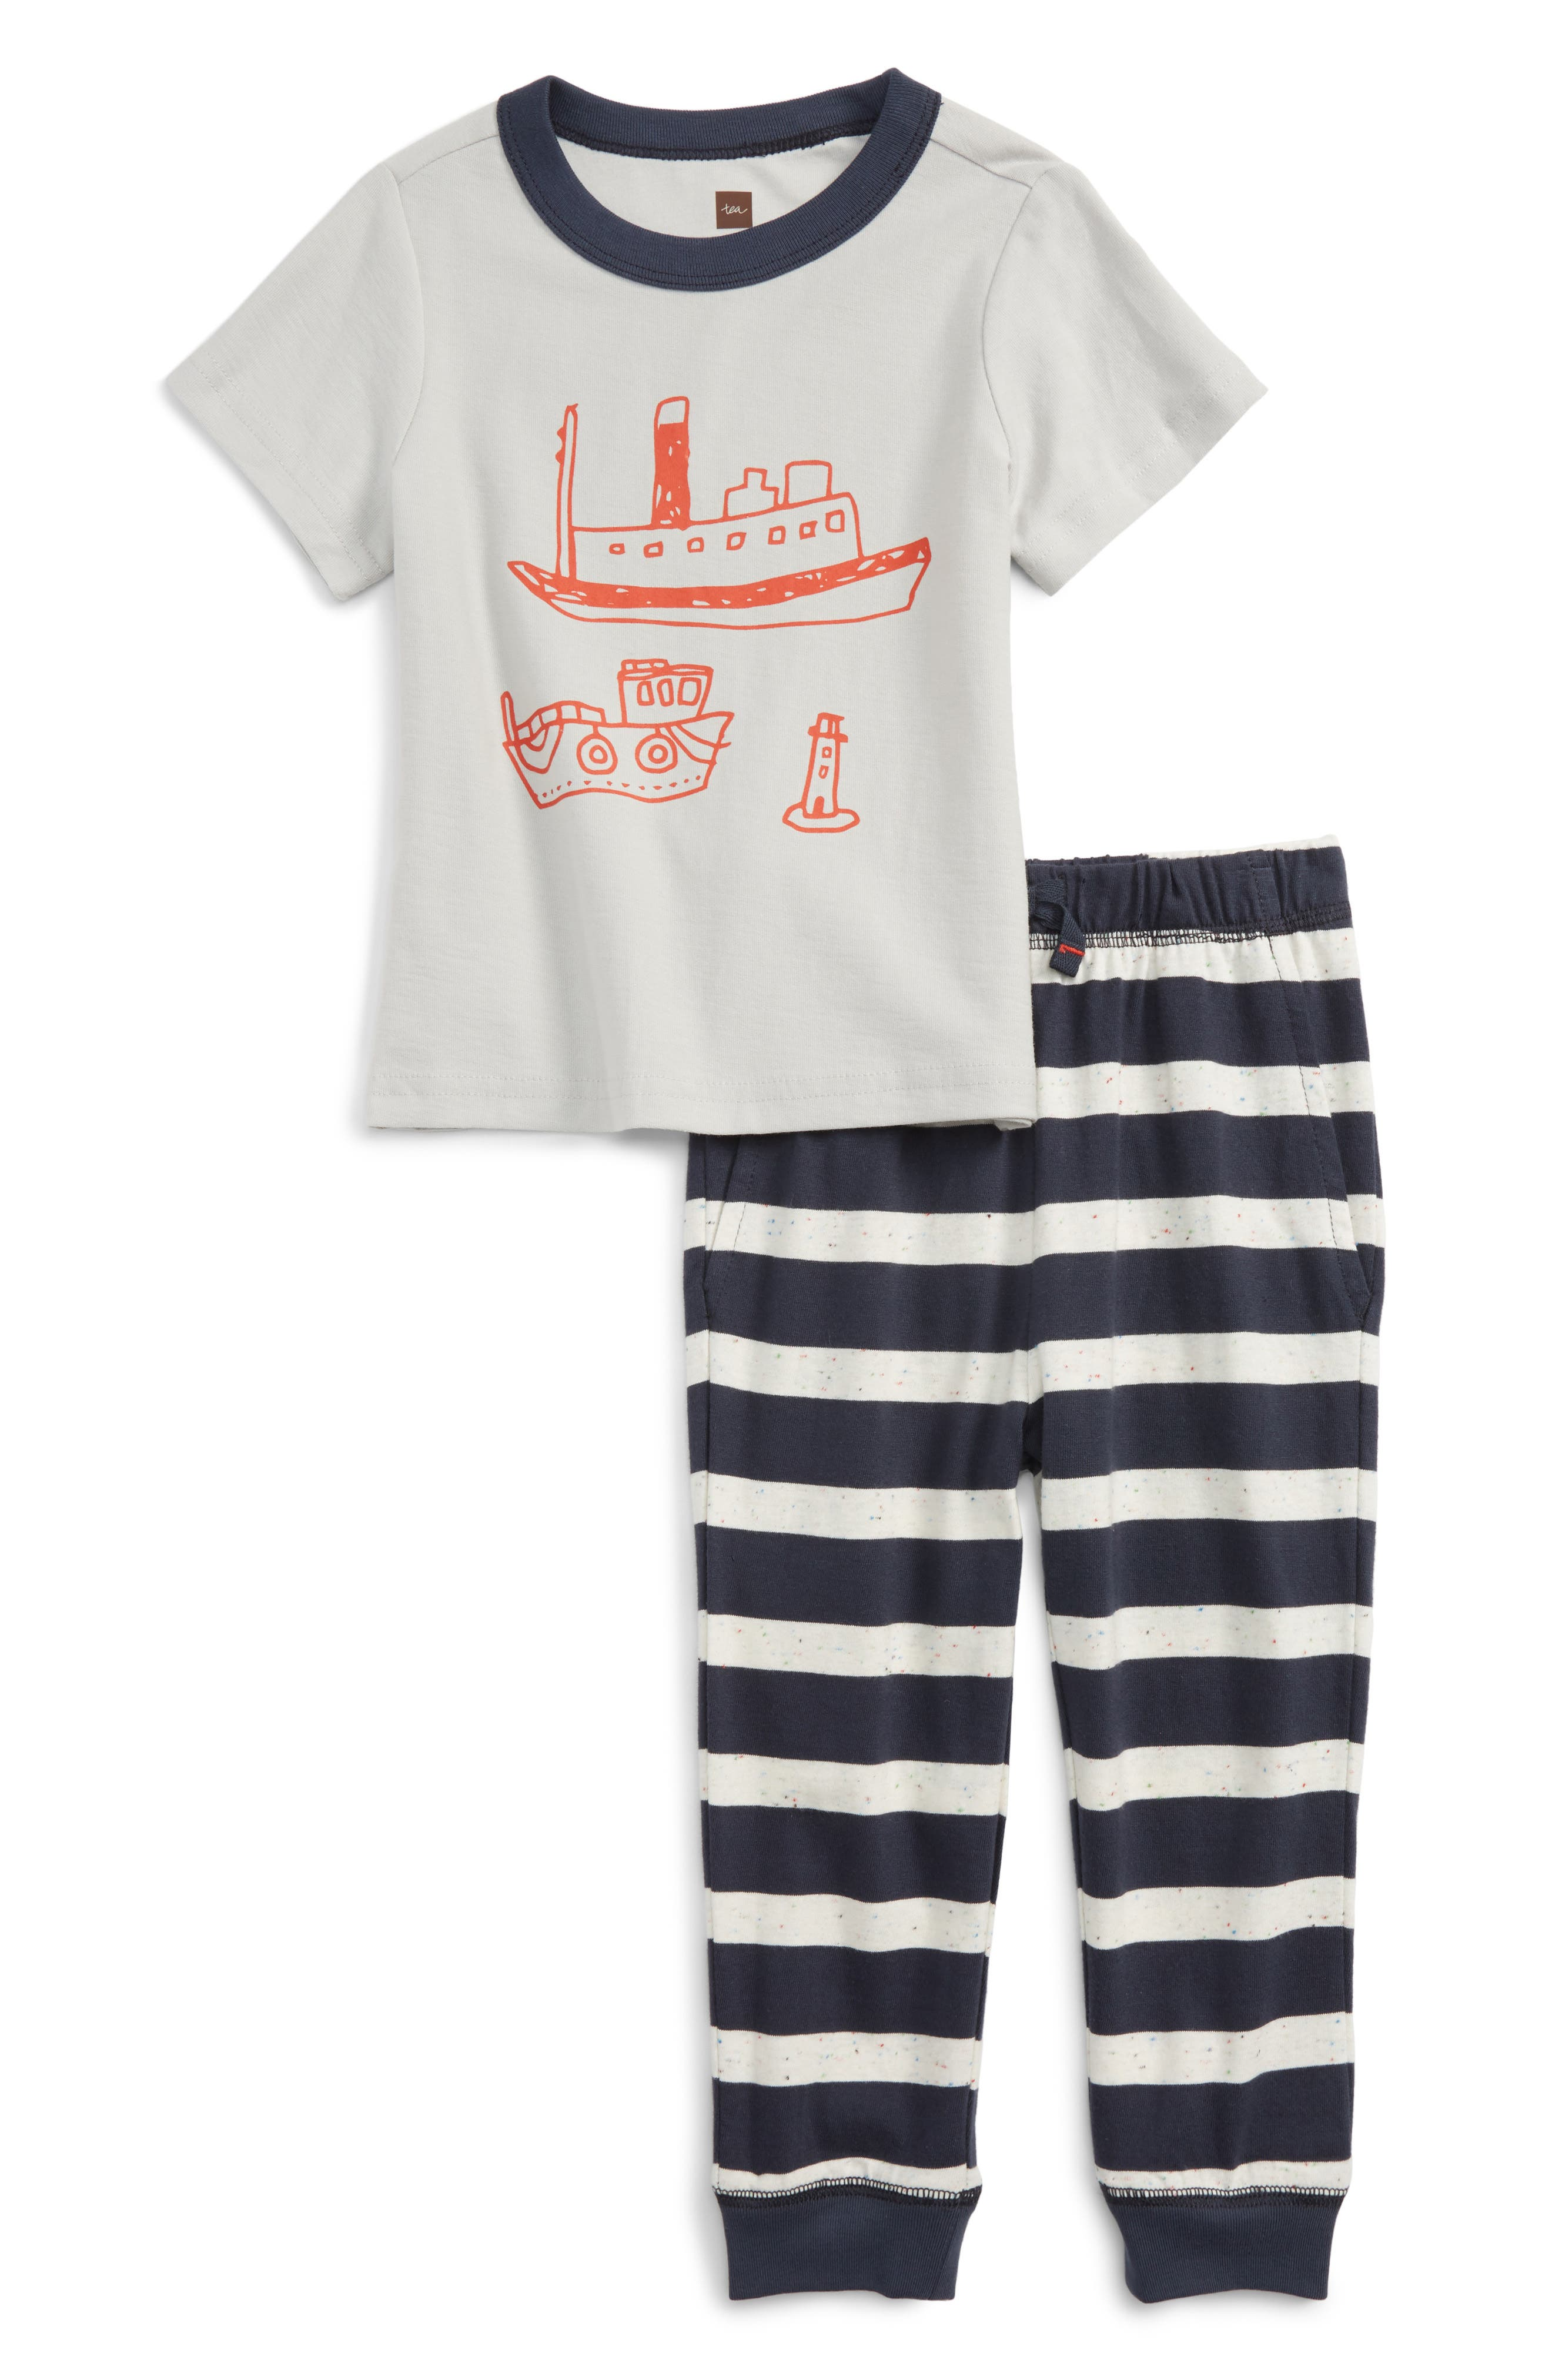 Tea Collection Plockton Graphic T-Shirt & Pants Set (Baby Boys)